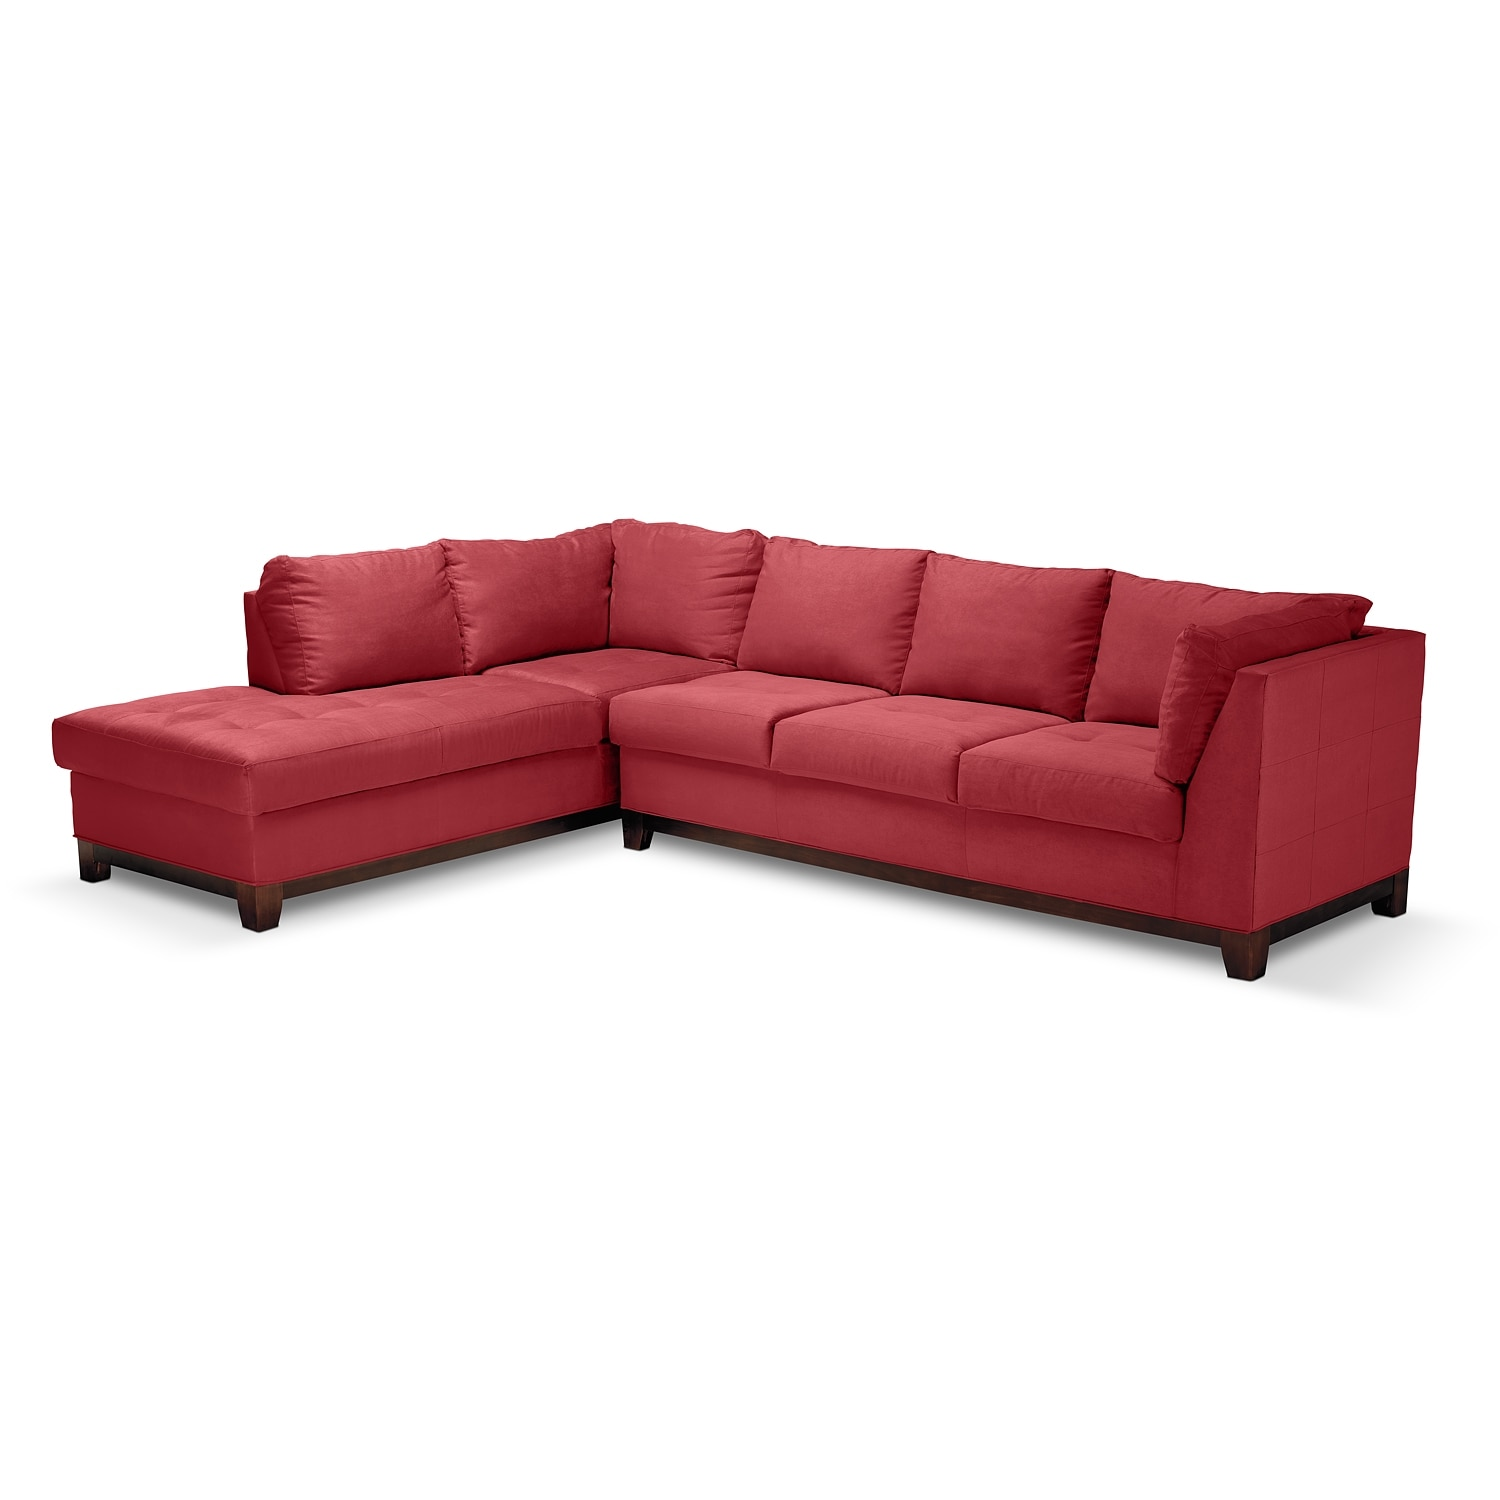 Soho 2 pc sectional reverse american signature furniture for Signature furniture